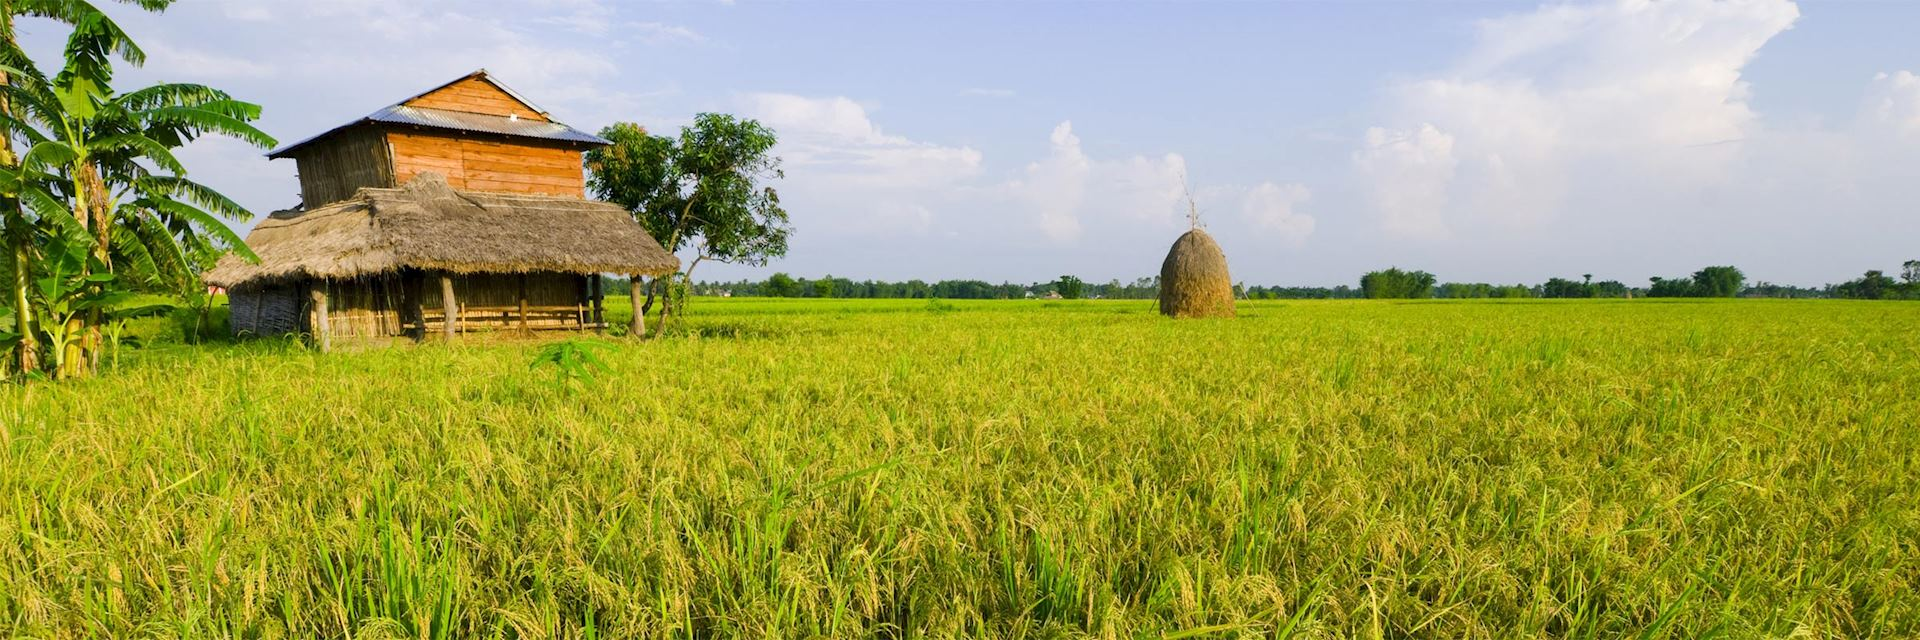 Rice paddy in Terai